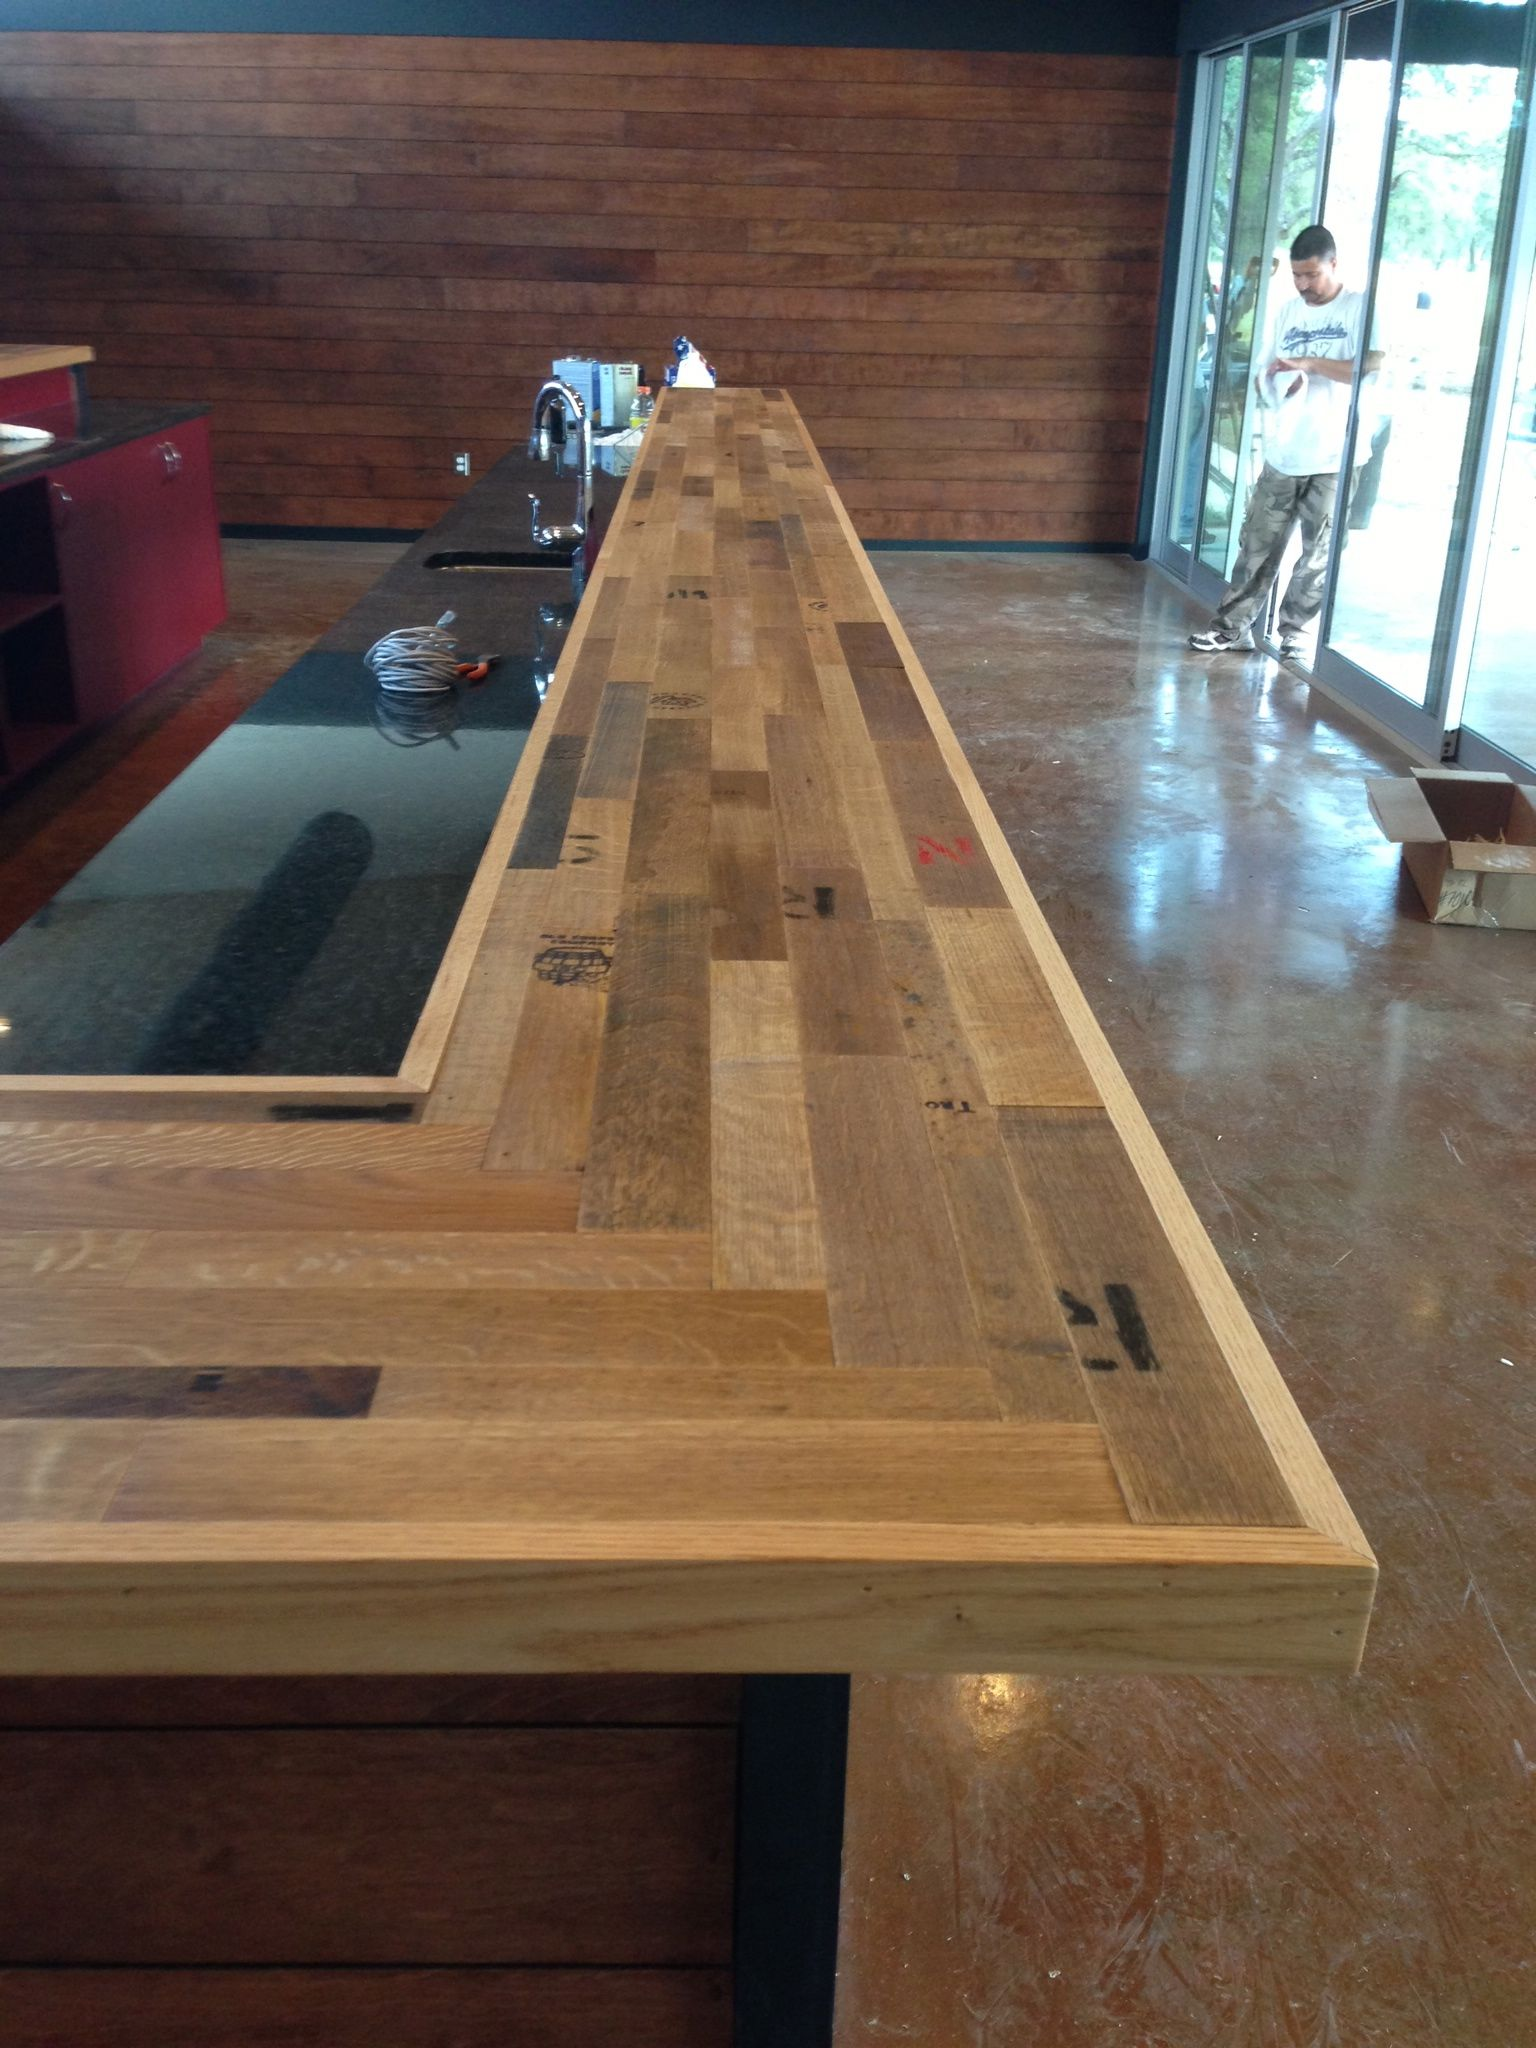 Cooperage bar made of recycled wine barrel staves creates